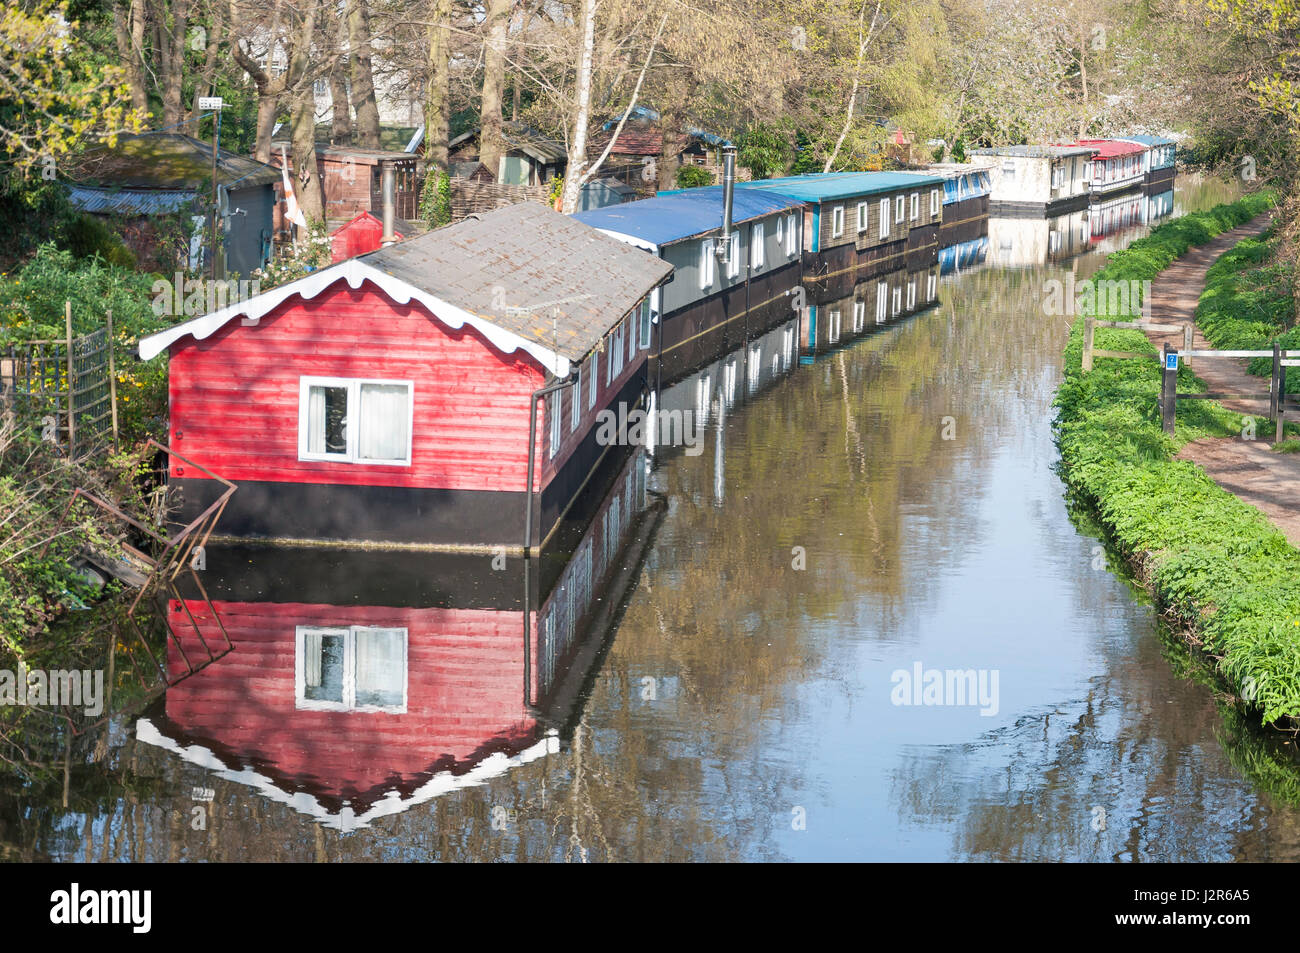 Houseboats on Basingstoke Canal, West Byfleet, Surrey, England, United Kingdom - Stock Image